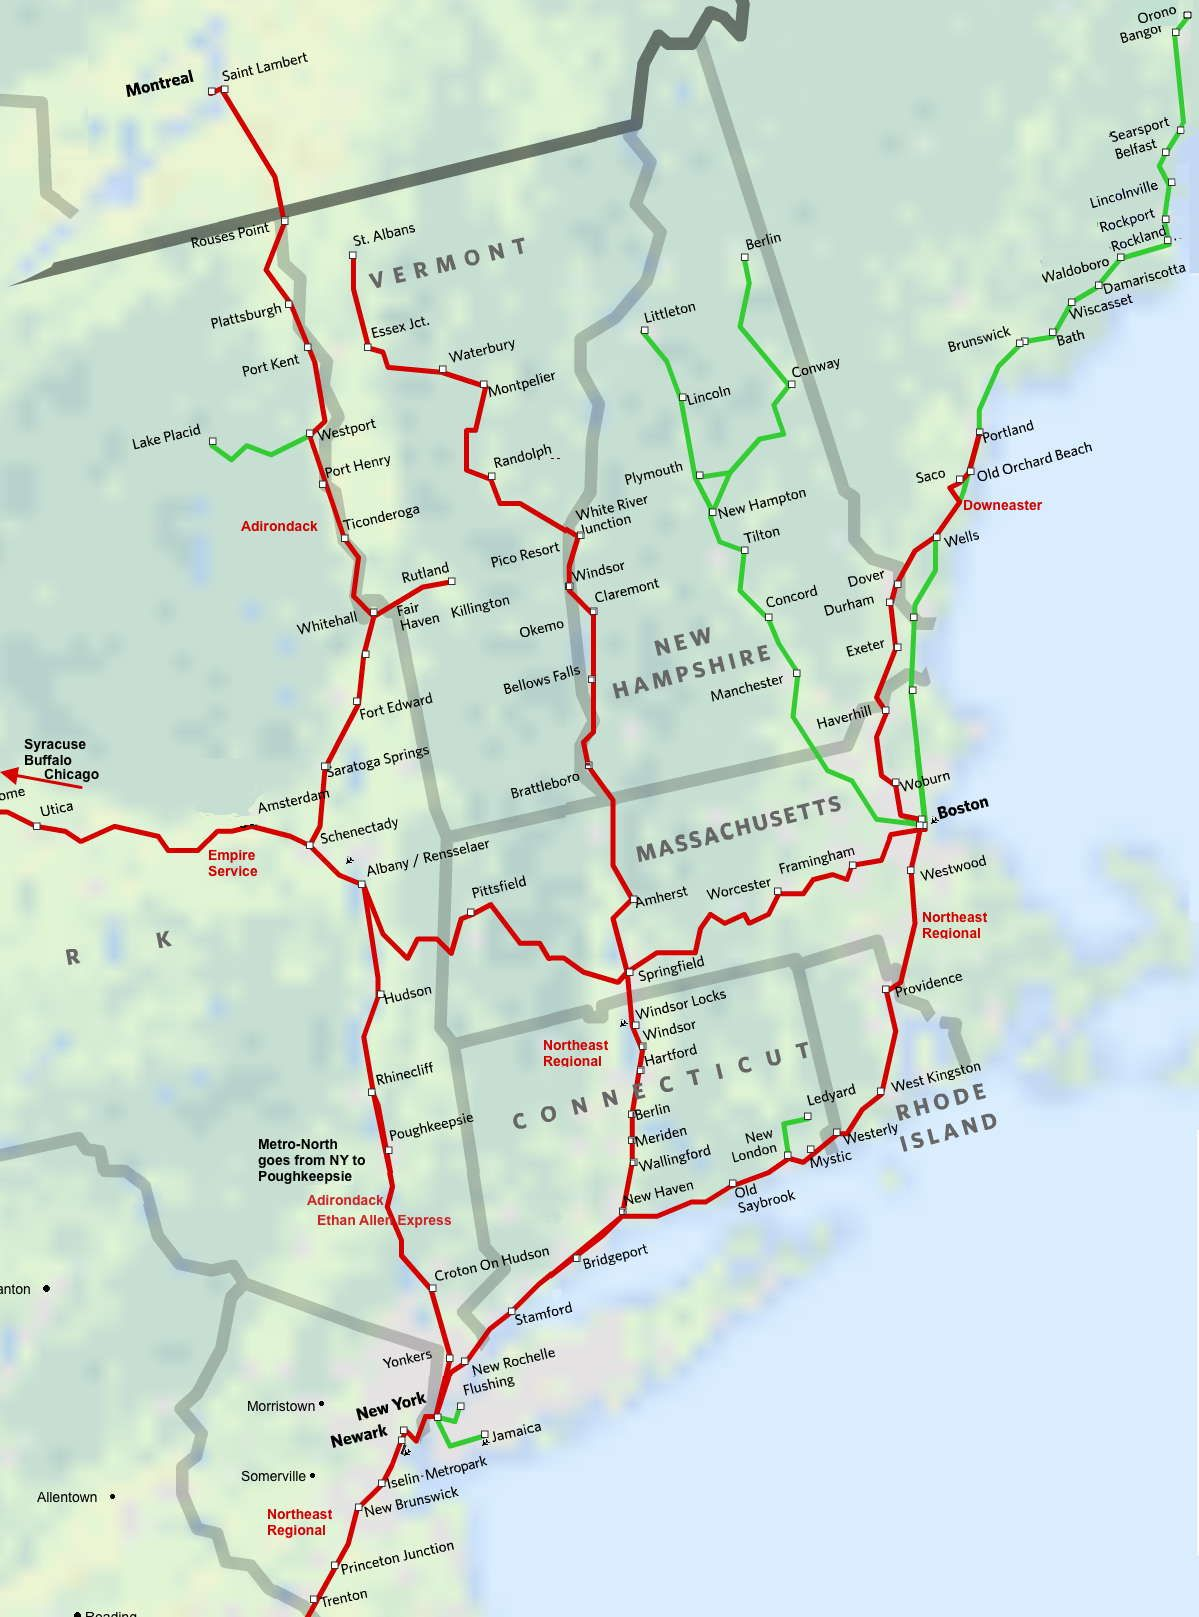 North East New England Amtrak Route Map Super Easy Way To